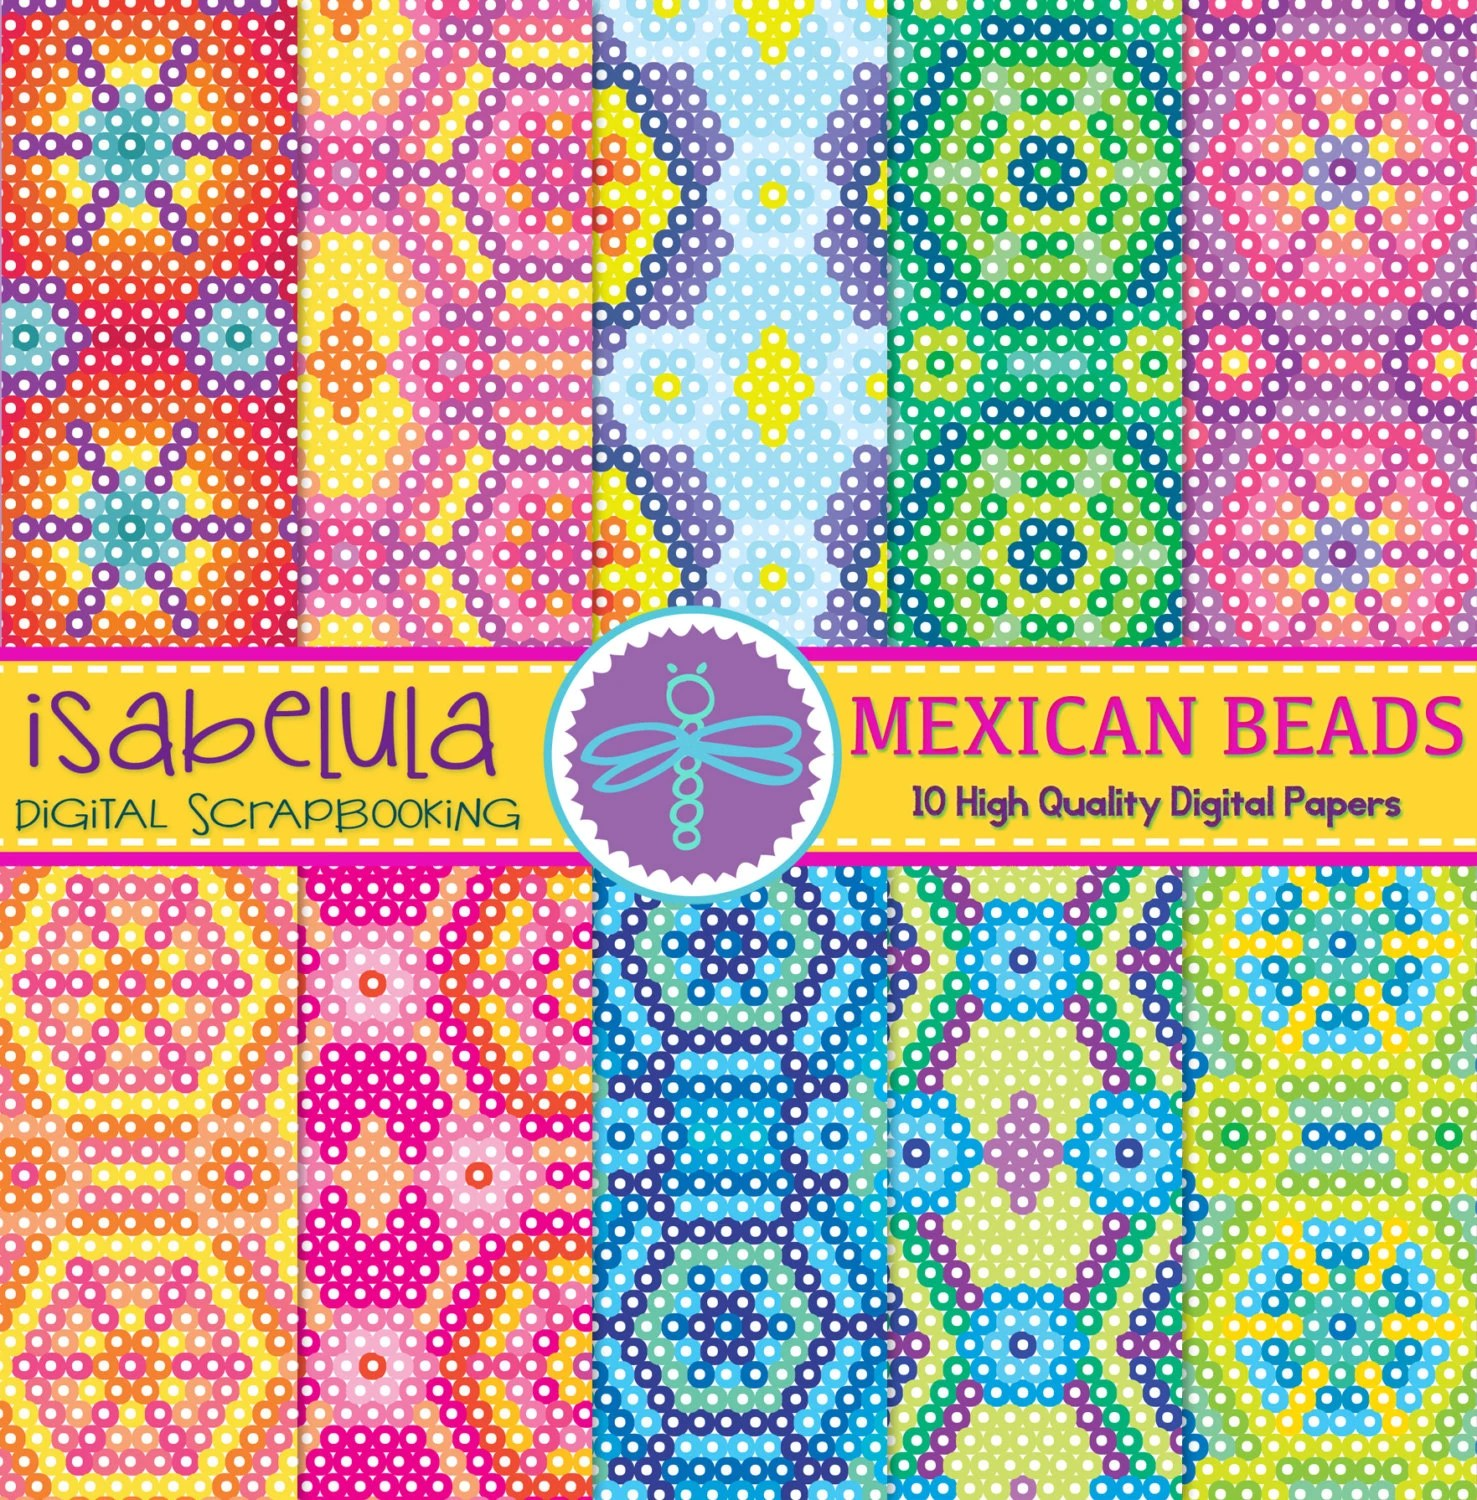 Arte Huichol For Sale Mexican Beads Huichol Art 10 Digital Papers Colorful Pattern Printable Background In Brights Hq Pink Yellow Green And Blue